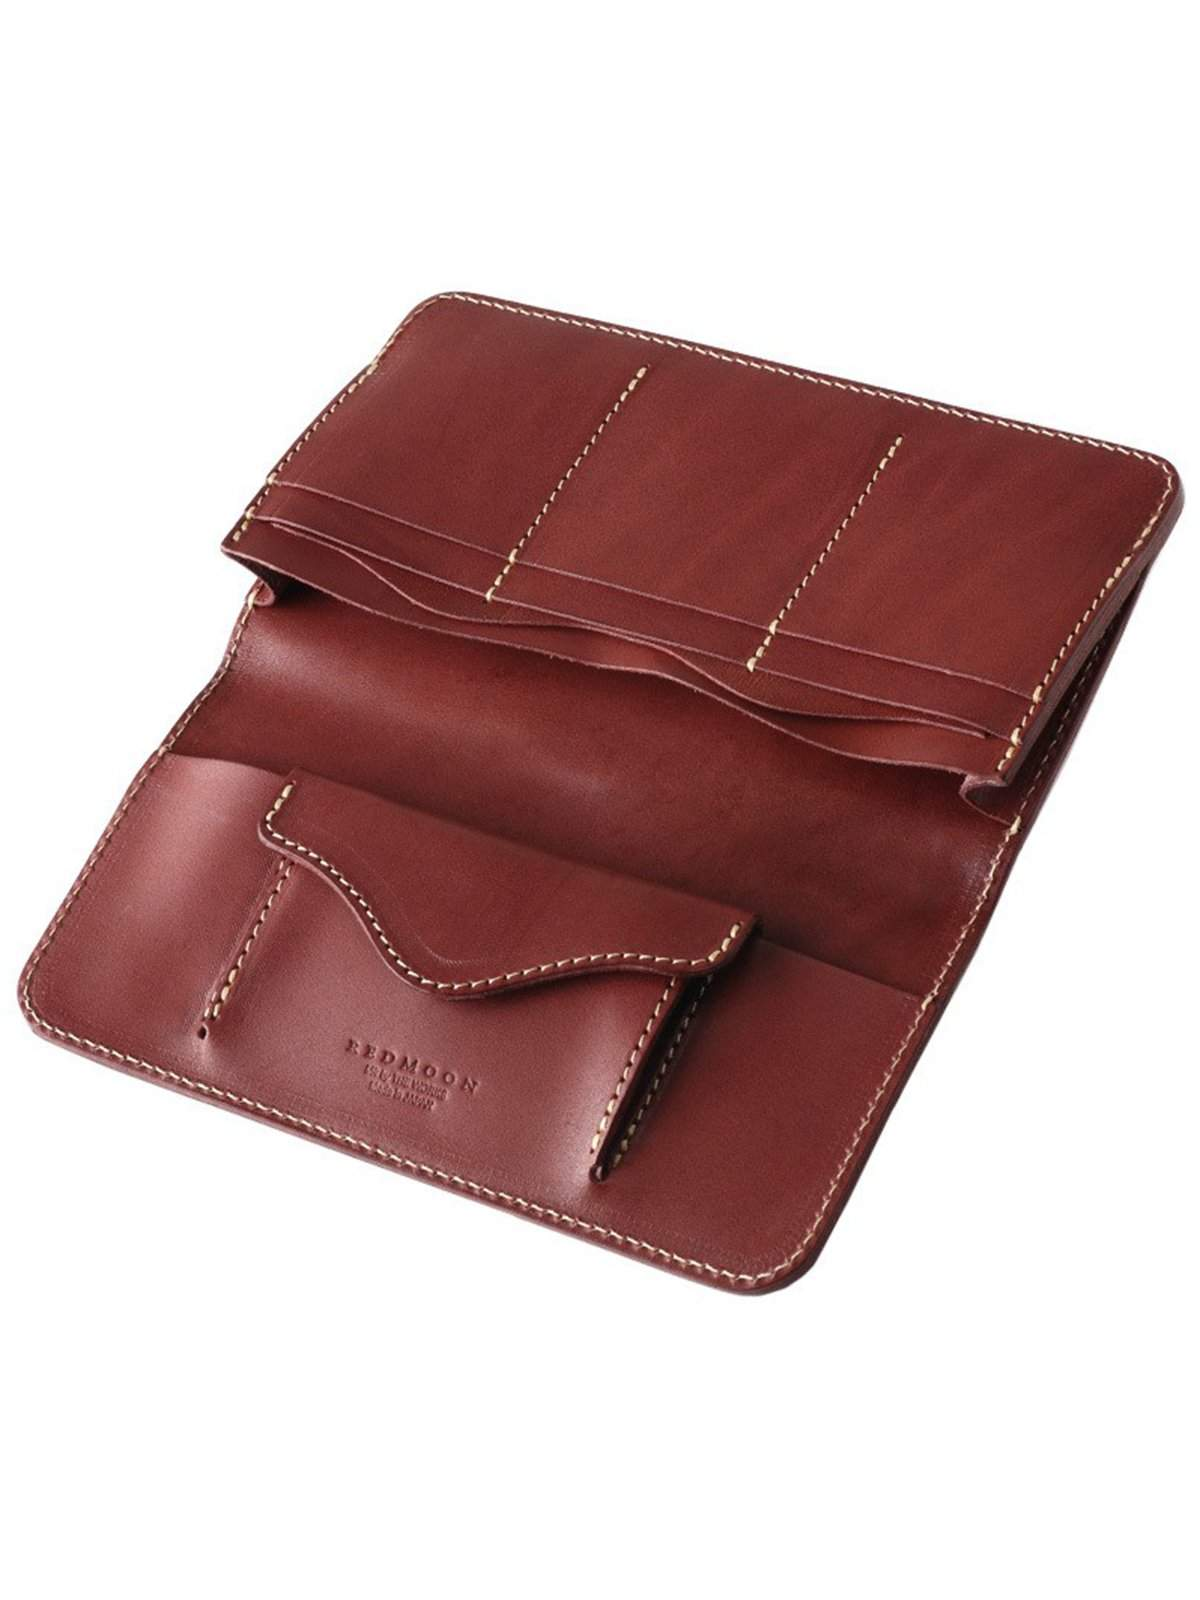 REDMOON Long Wallet RMR-02T DCB Dark Brown - MORE by Morello Indonesia